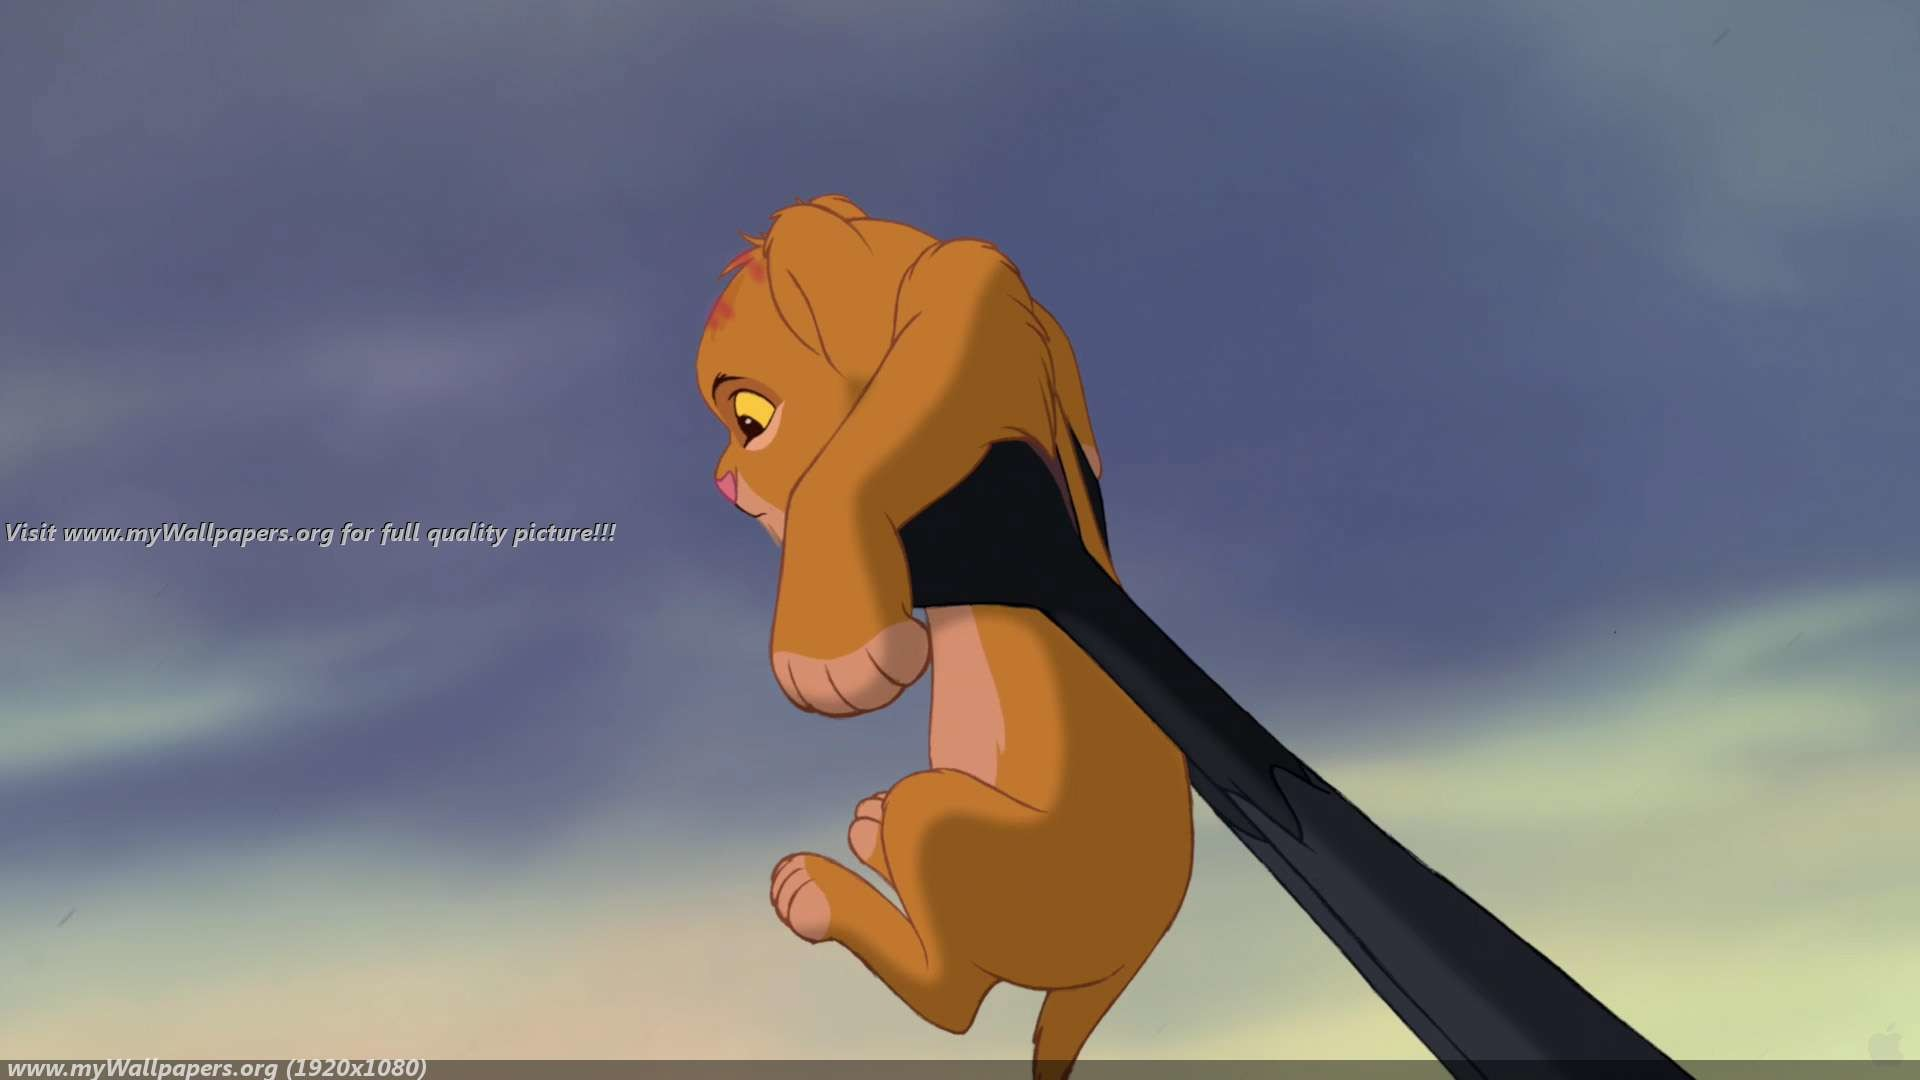 The Lion King Cartoon HD Image Wallpaper for iPhone